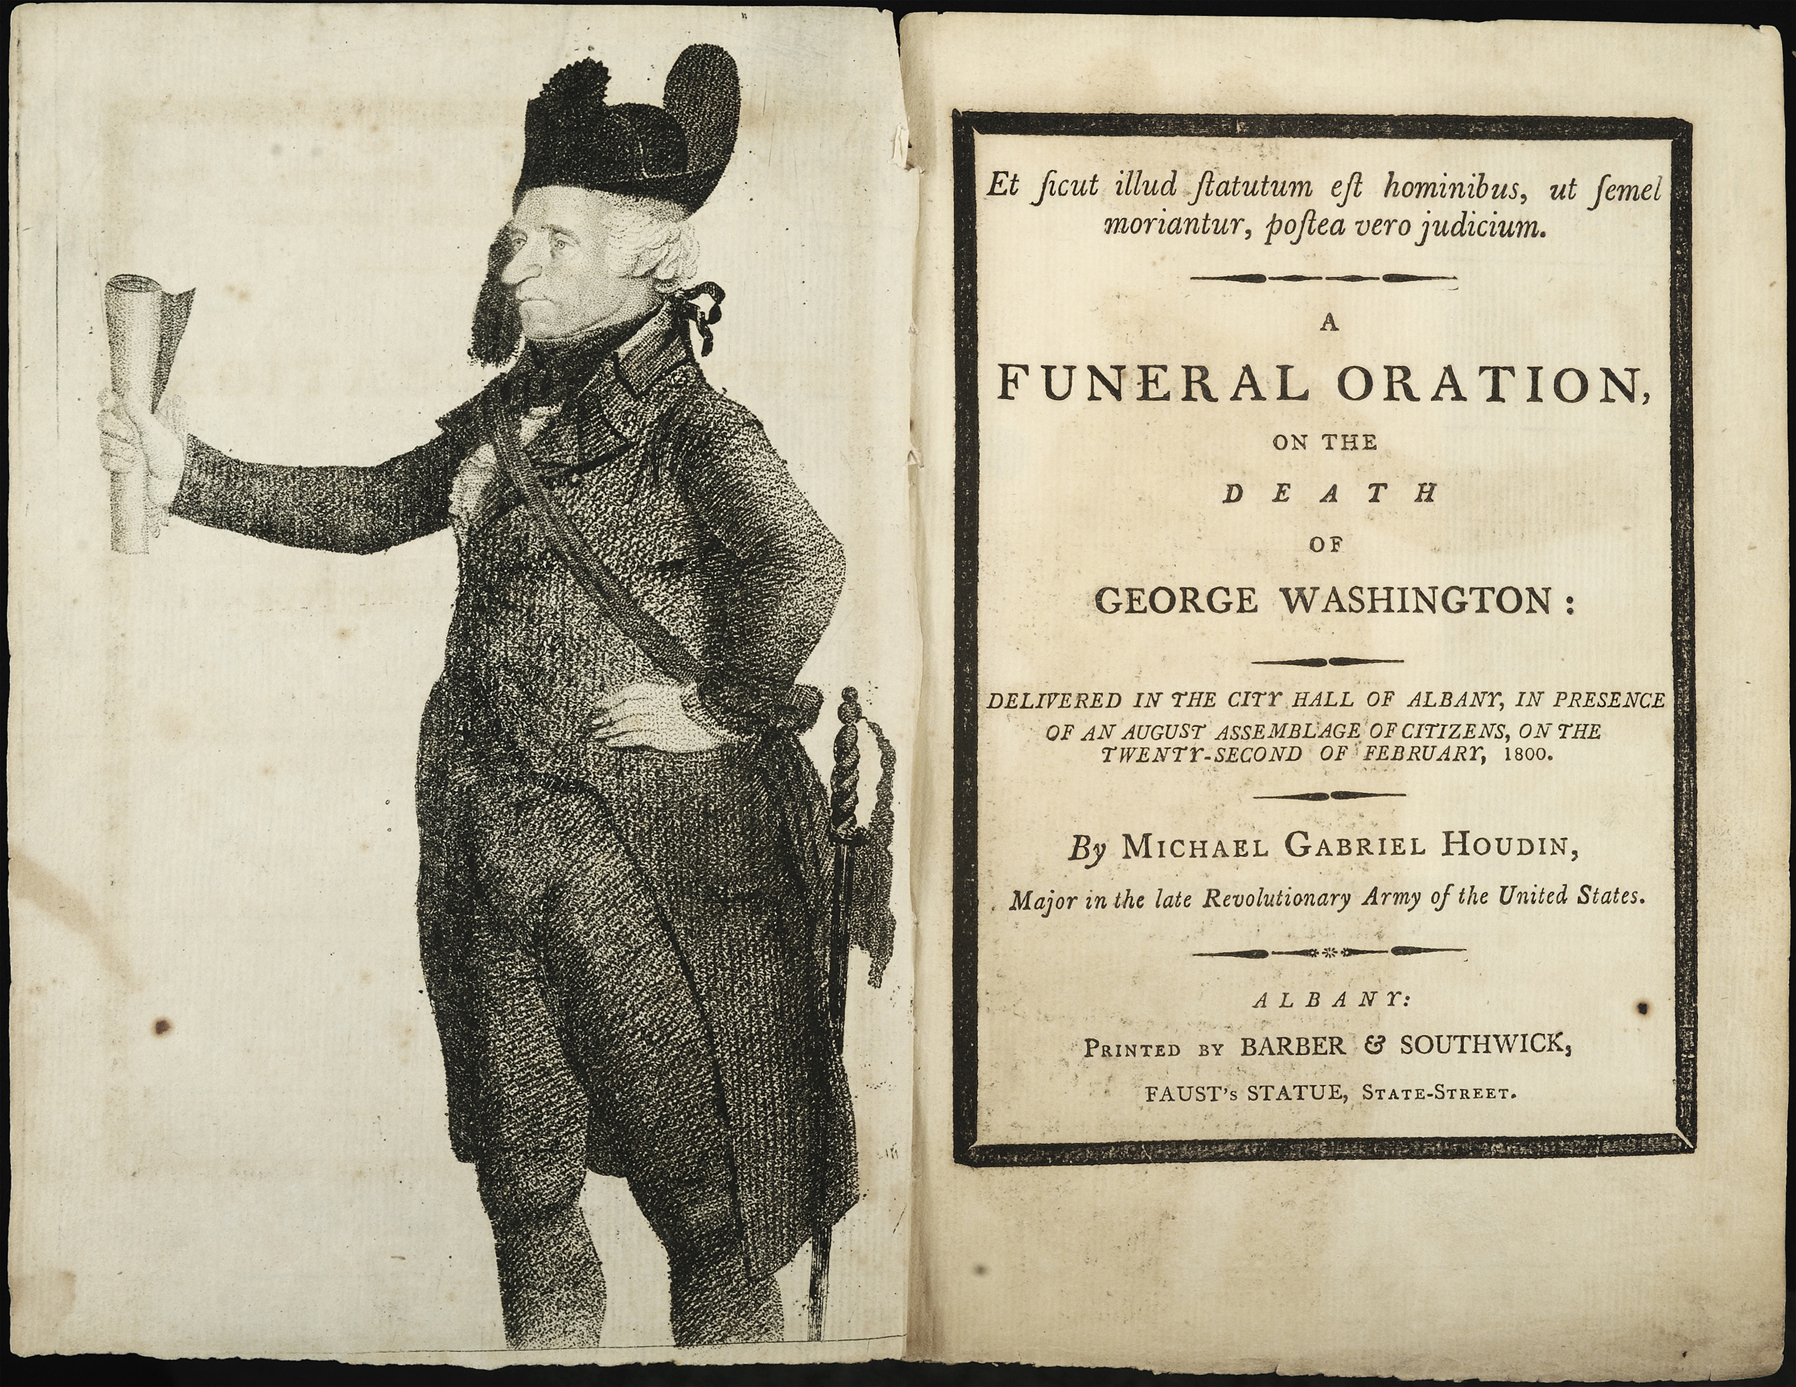 A Funeral Oration, on the Death of George Washington: Delivered in the City Hall of Albany, in Presence of an August Assemblage of Citizens, on the Twenty-second of February, 1800, Michael Gabriel Houdin, Albany: Printed by Barber & Southwick, [1800]